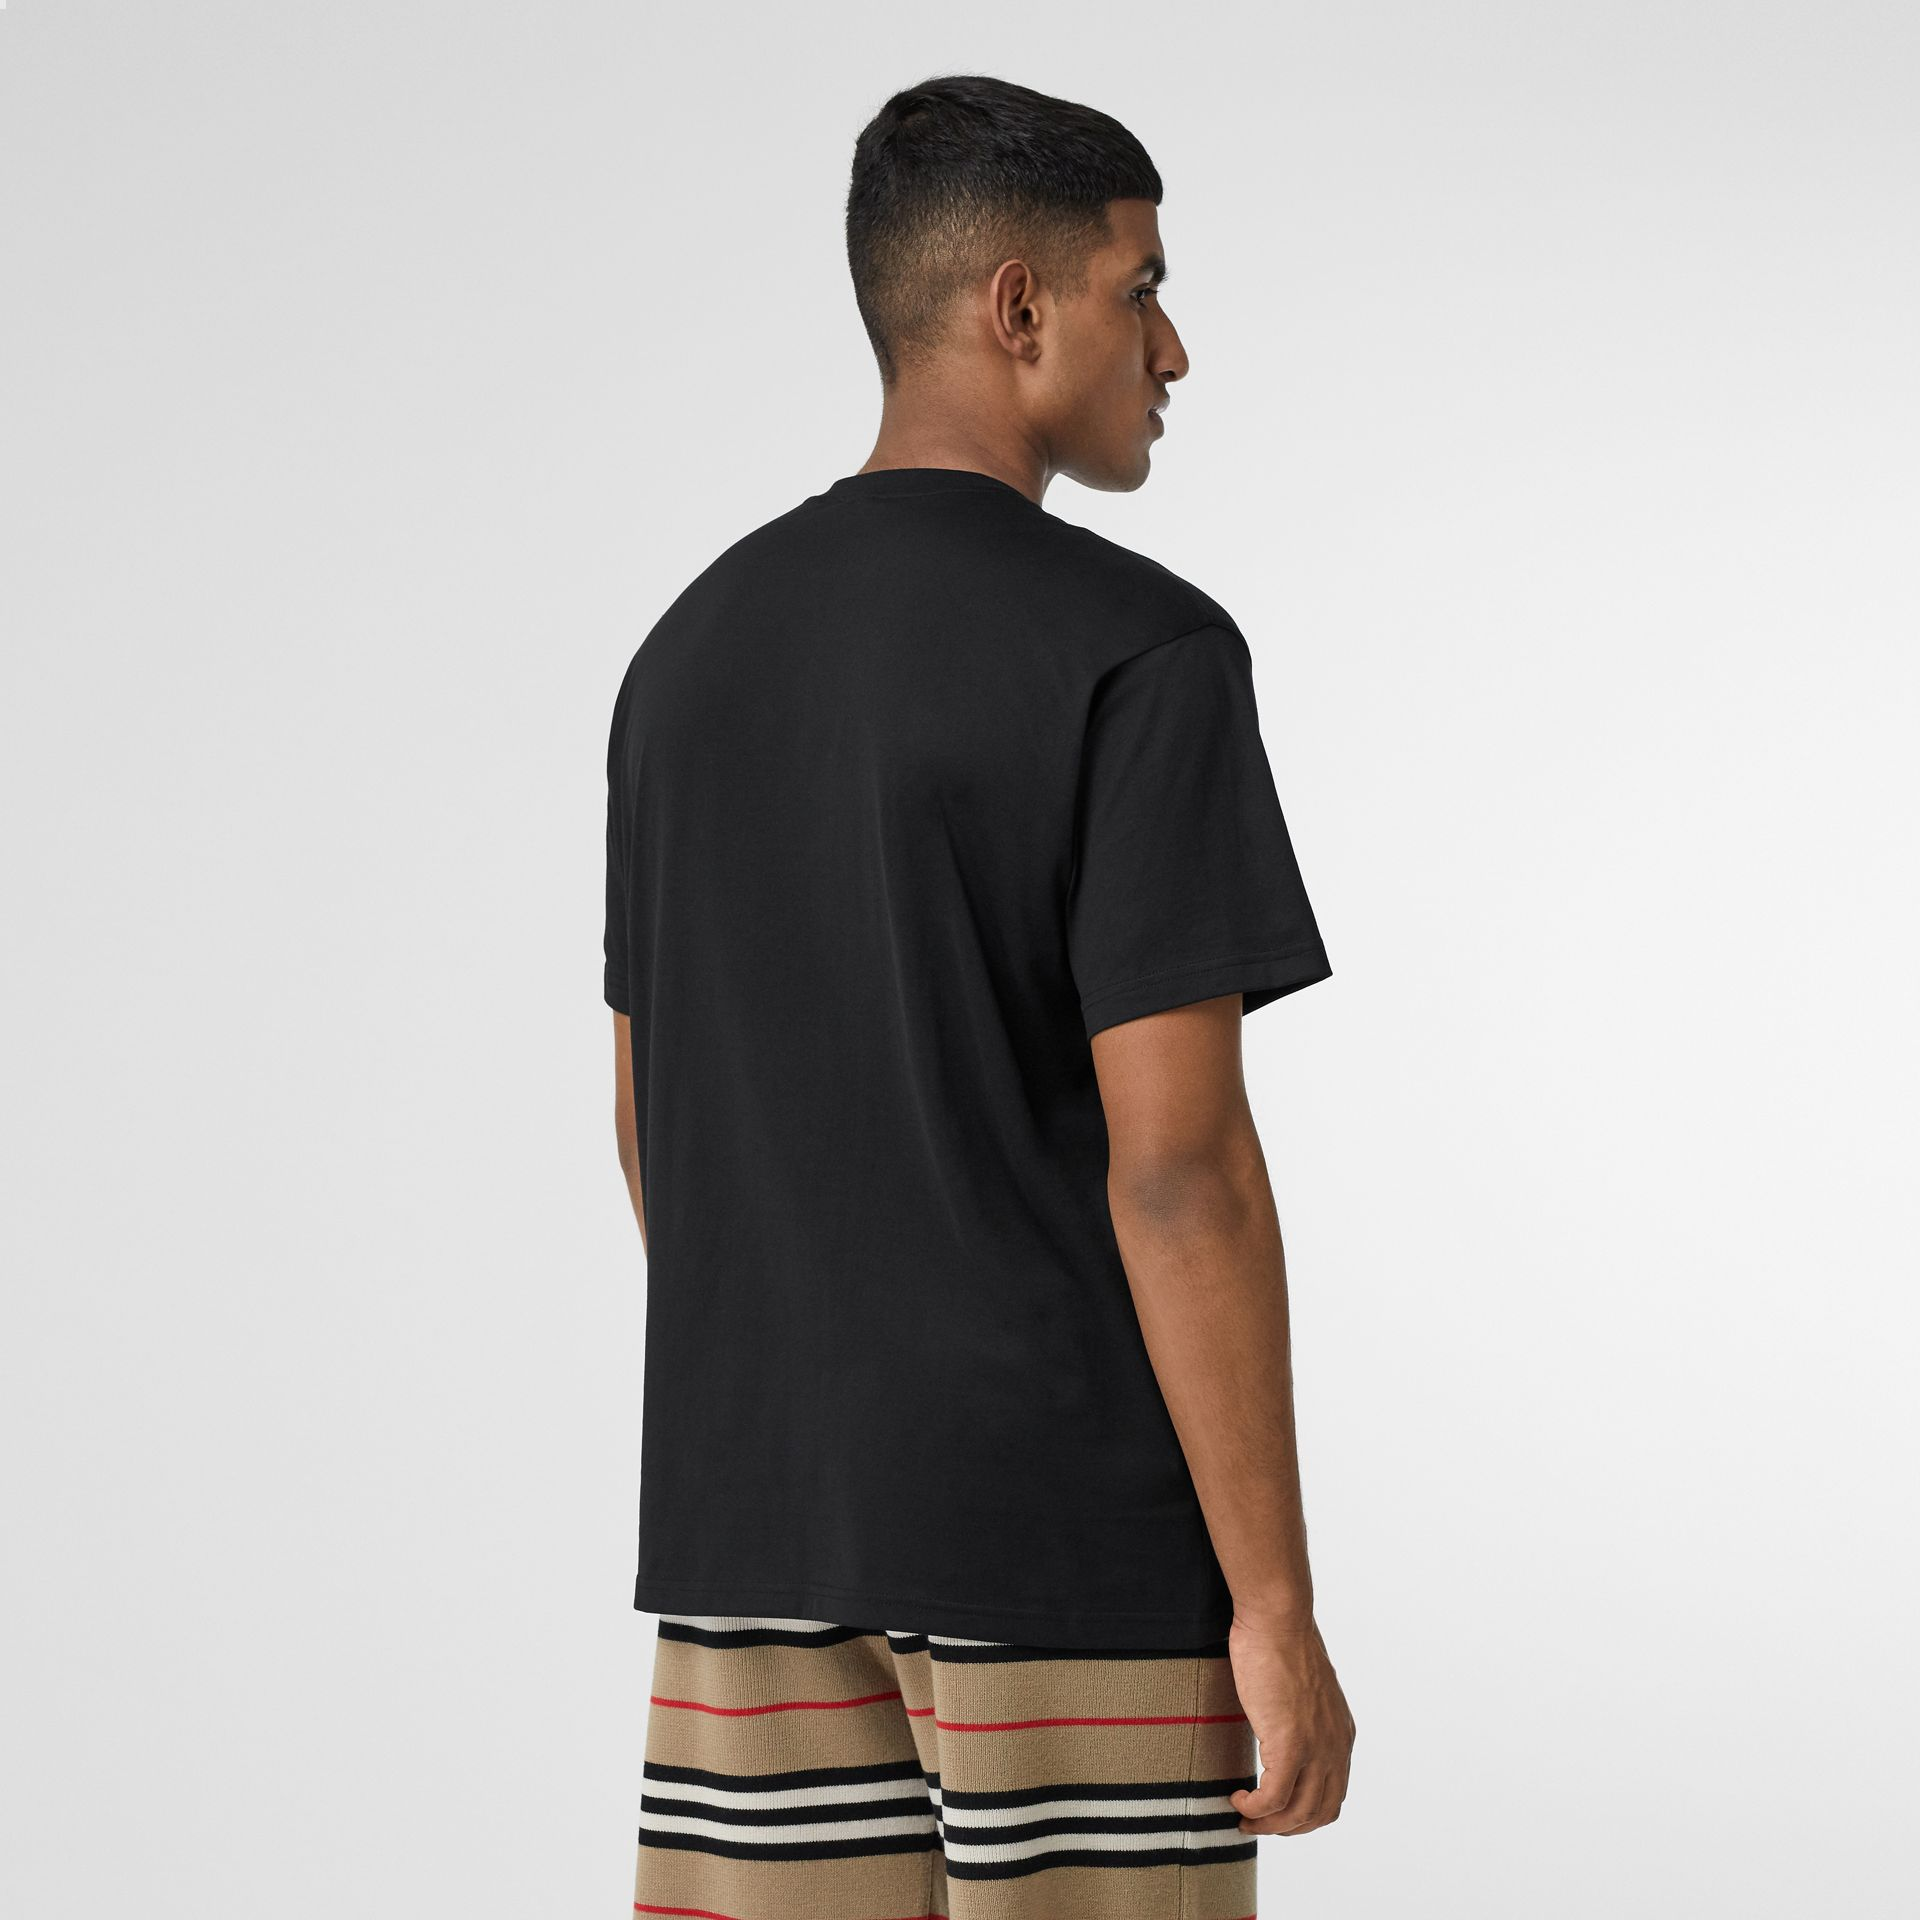 Monogram Motif Cotton Oversized T-shirt in Black - Men | Burberry Singapore - gallery image 2